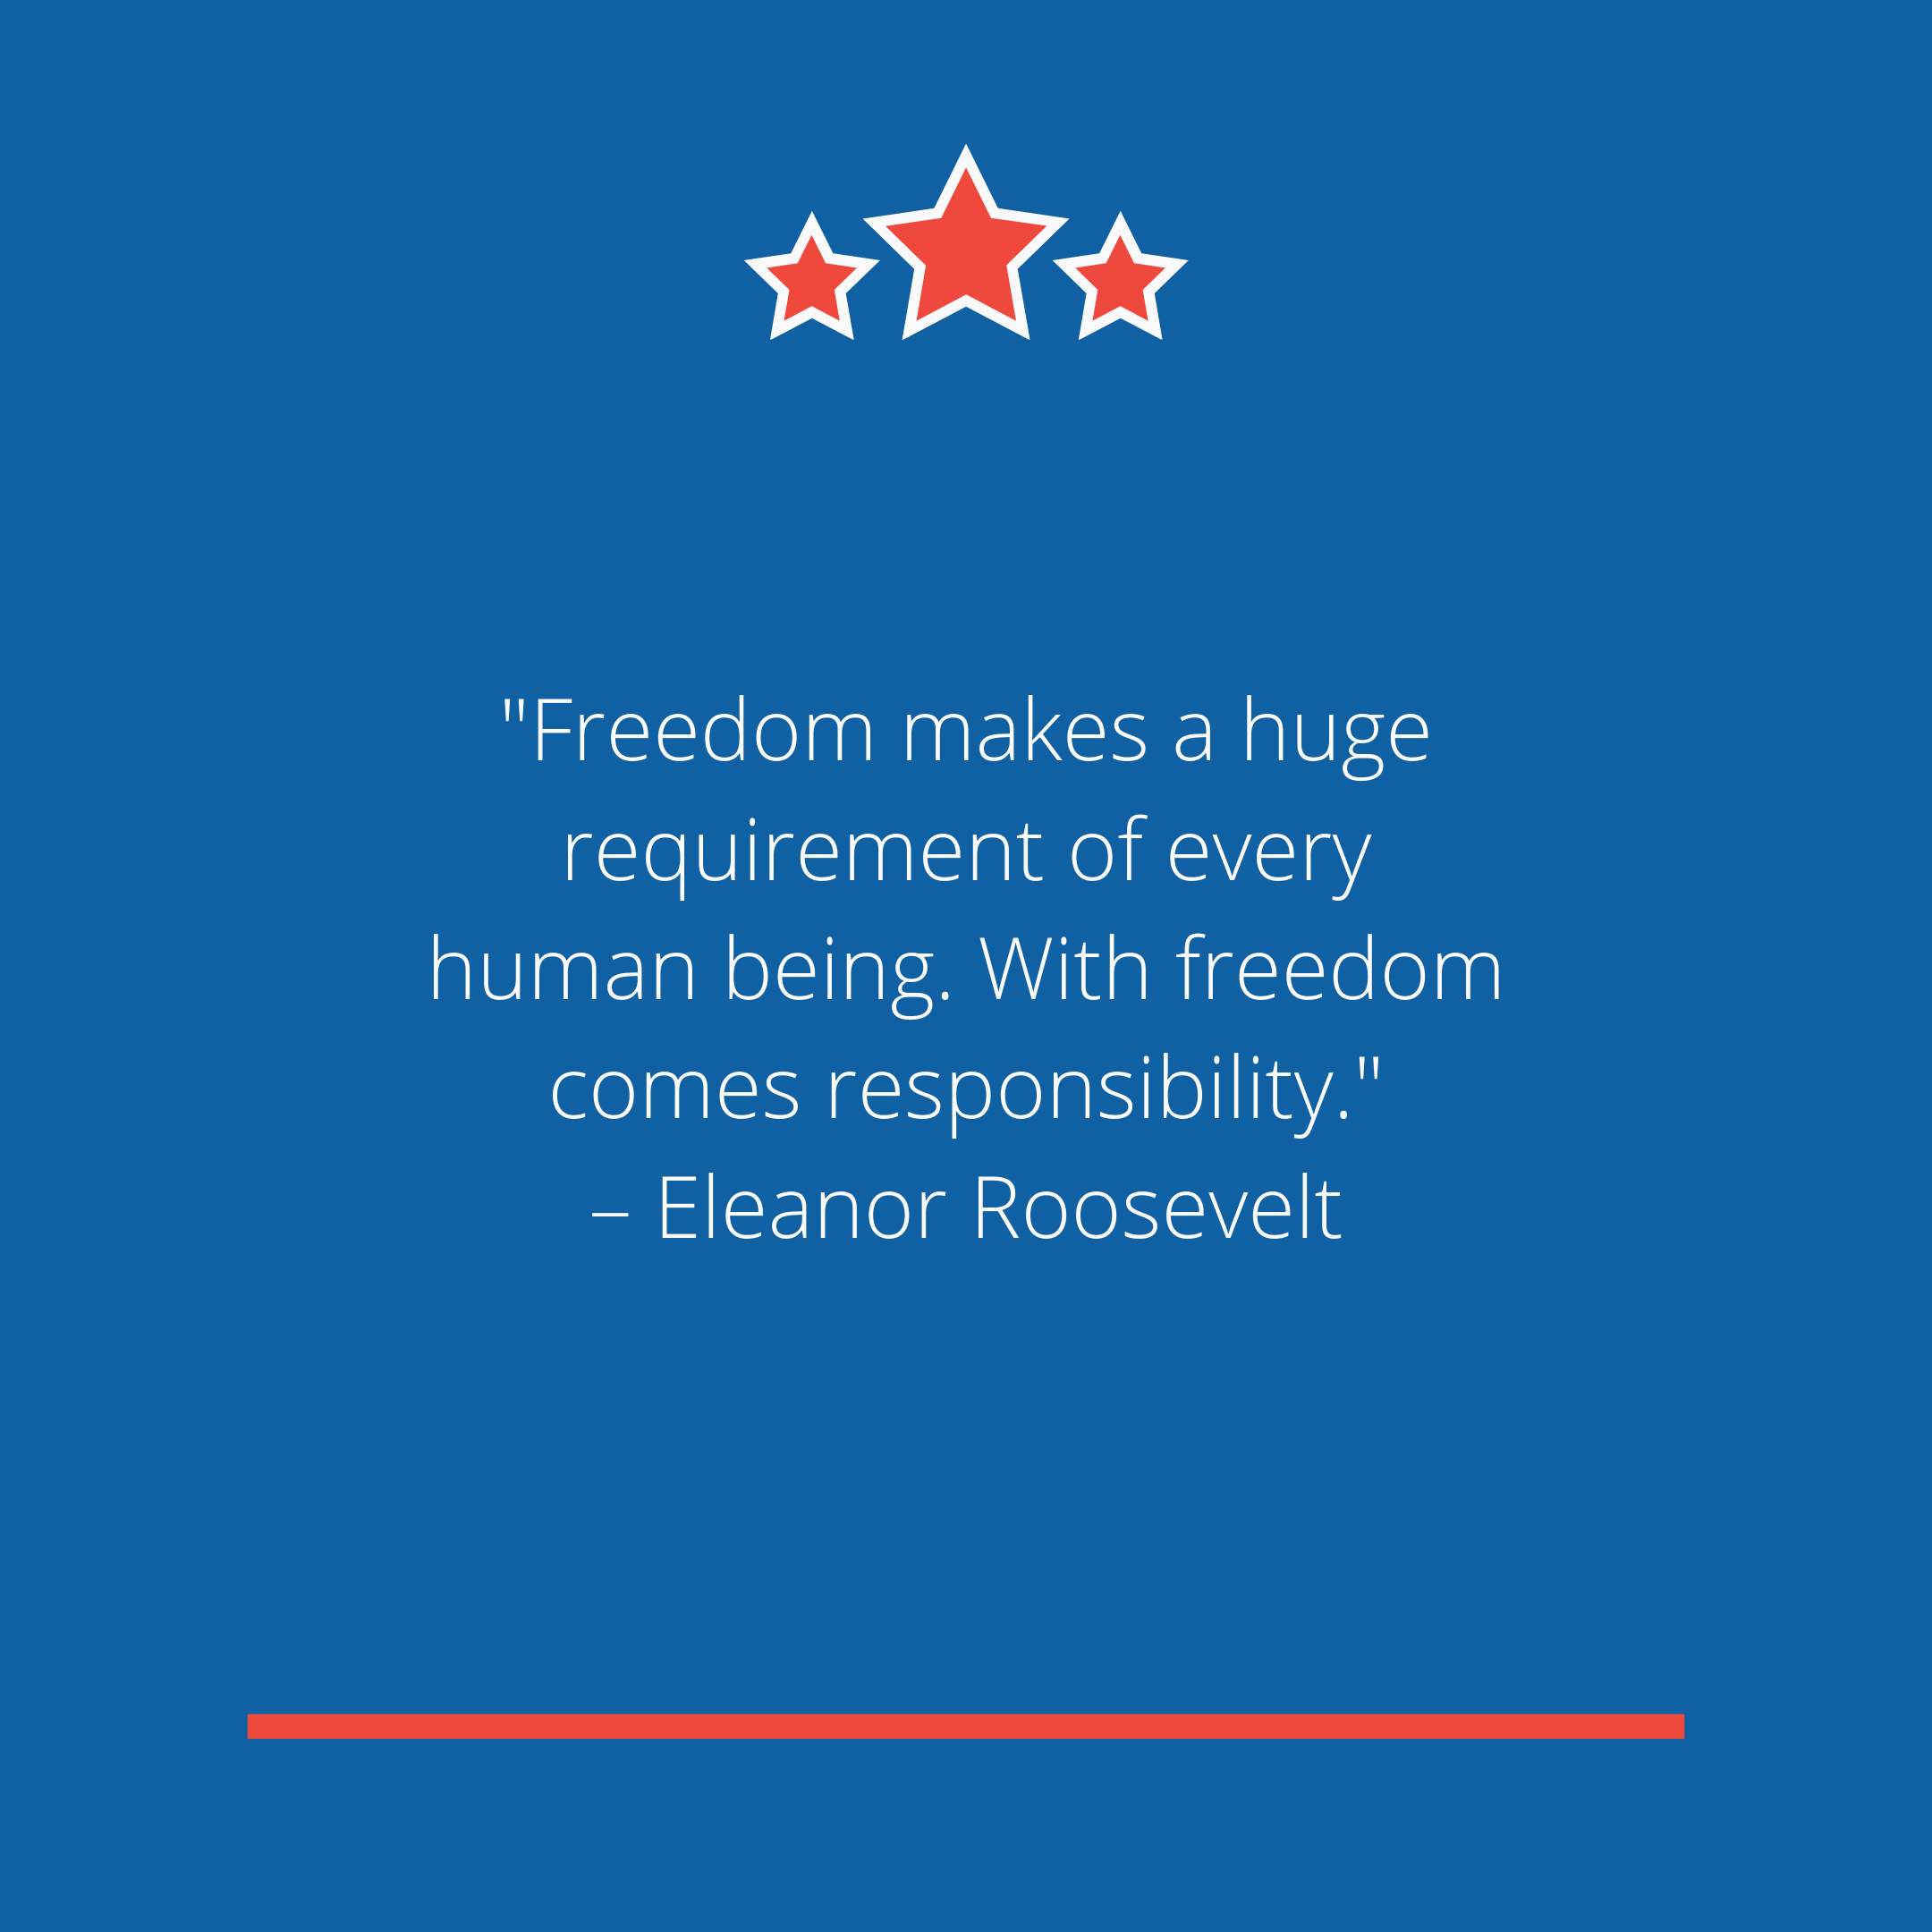 """Freedom makes a huge requirement of every human being. With freedom comes responsibility."" –Eleanor Roosevelt"